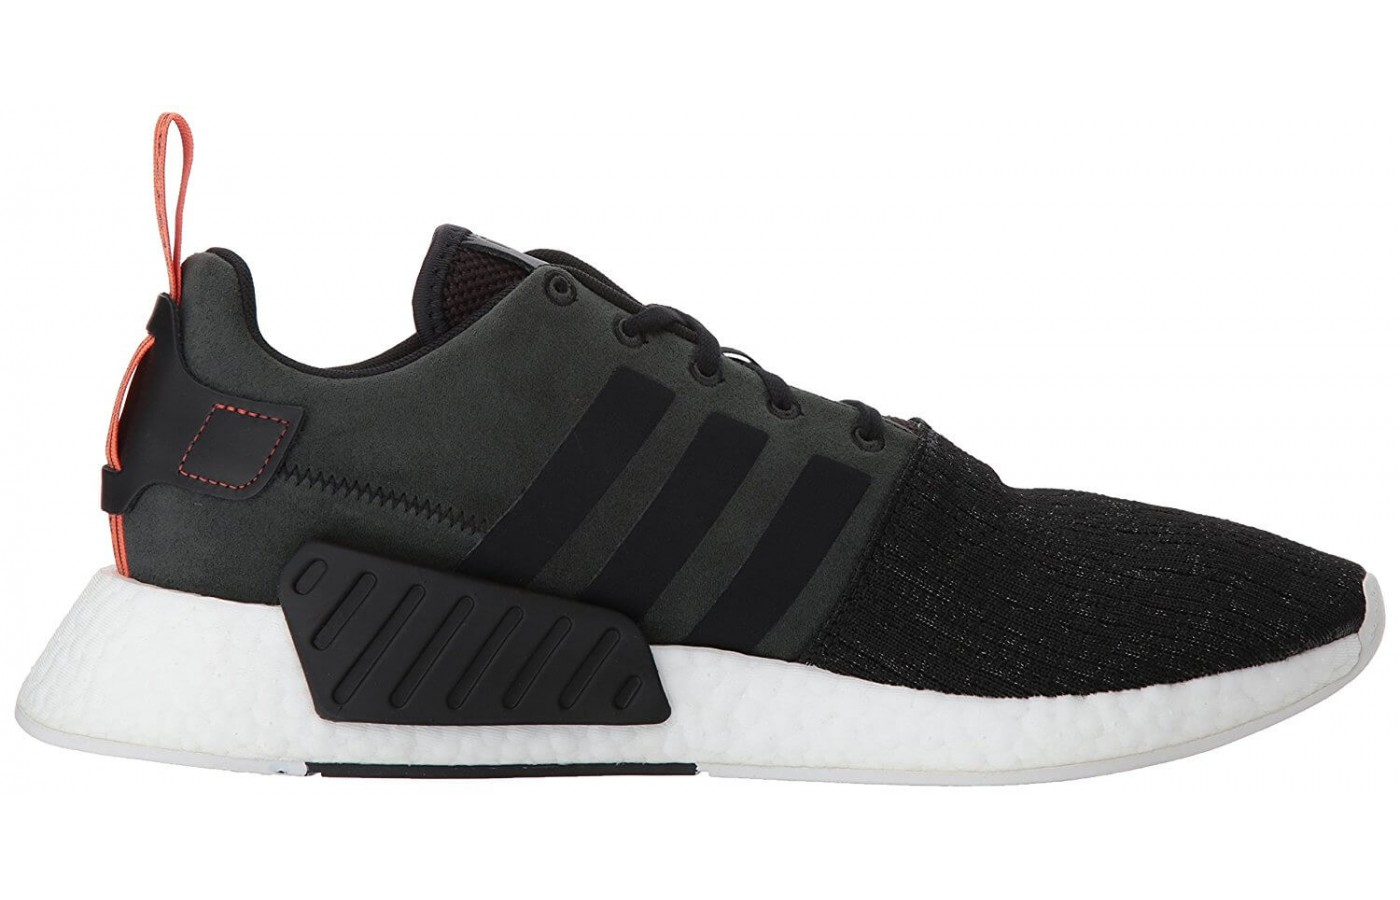 low priced 2ffde 83f4e Adidas NMD R2 Reviewed for Performance and Quality